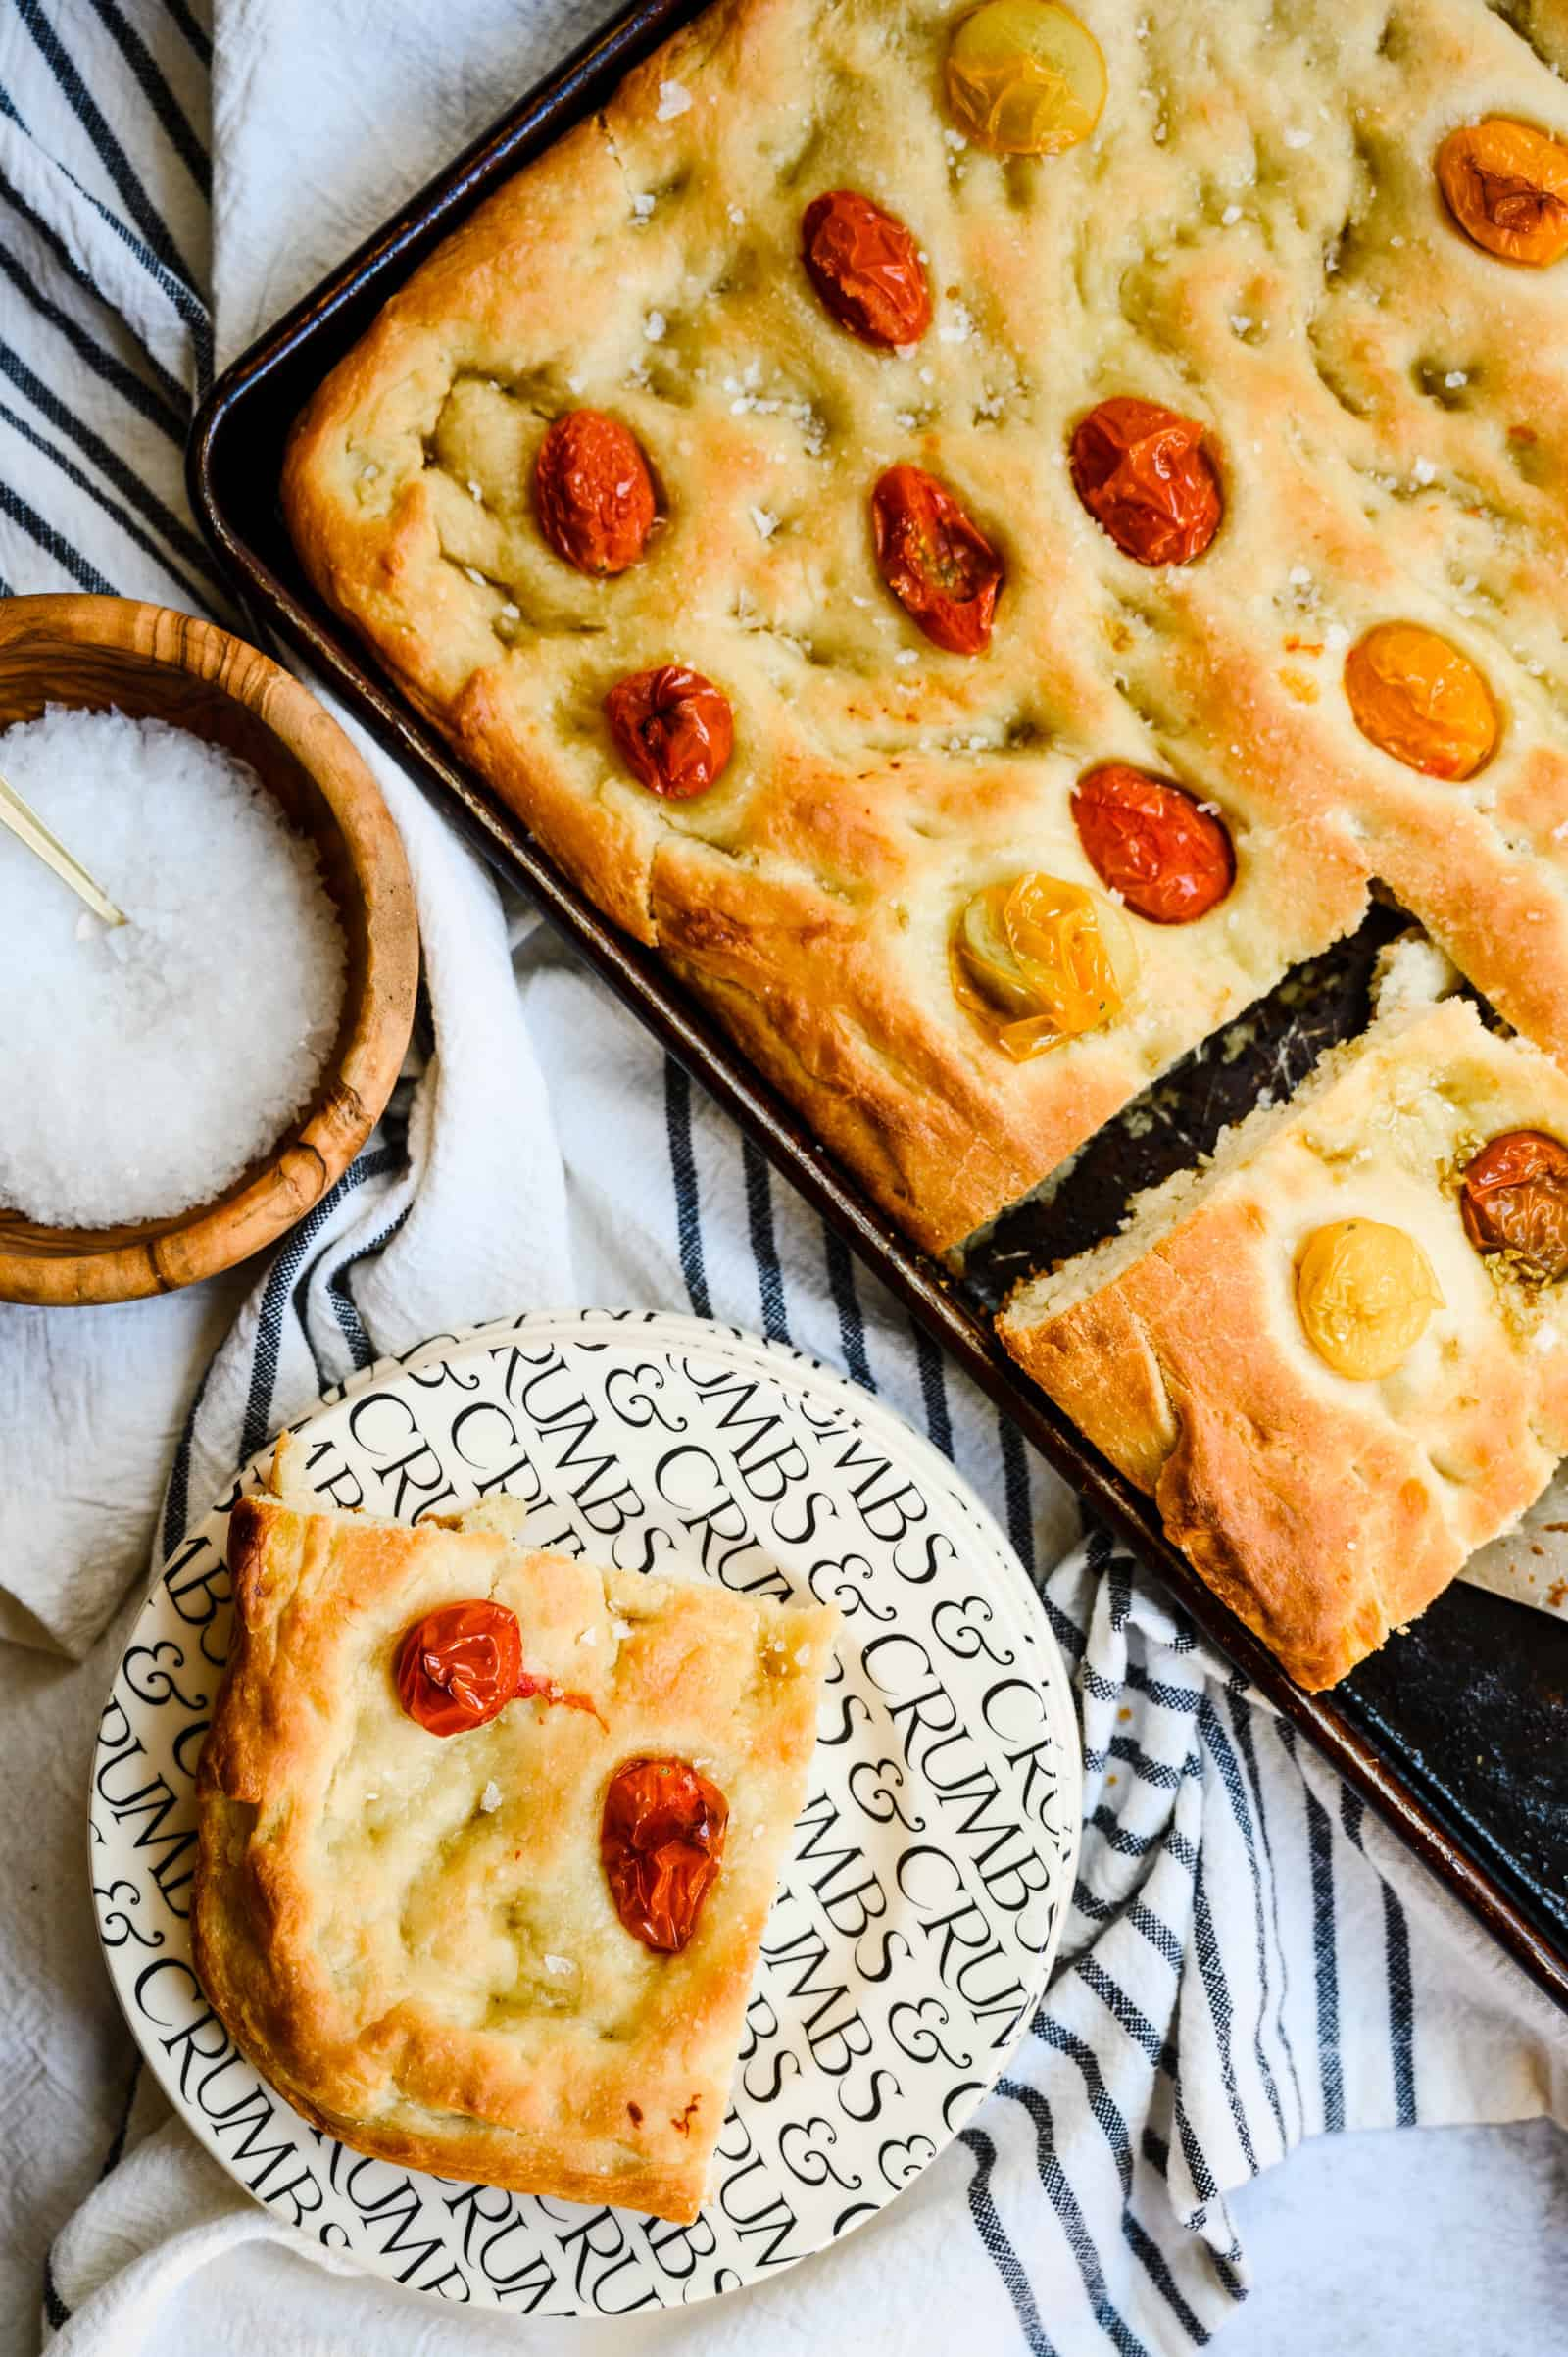 sheet pan of baked focaccia with tomatoes in it and a bowl of salt and piece of focaccia on a black and white plate